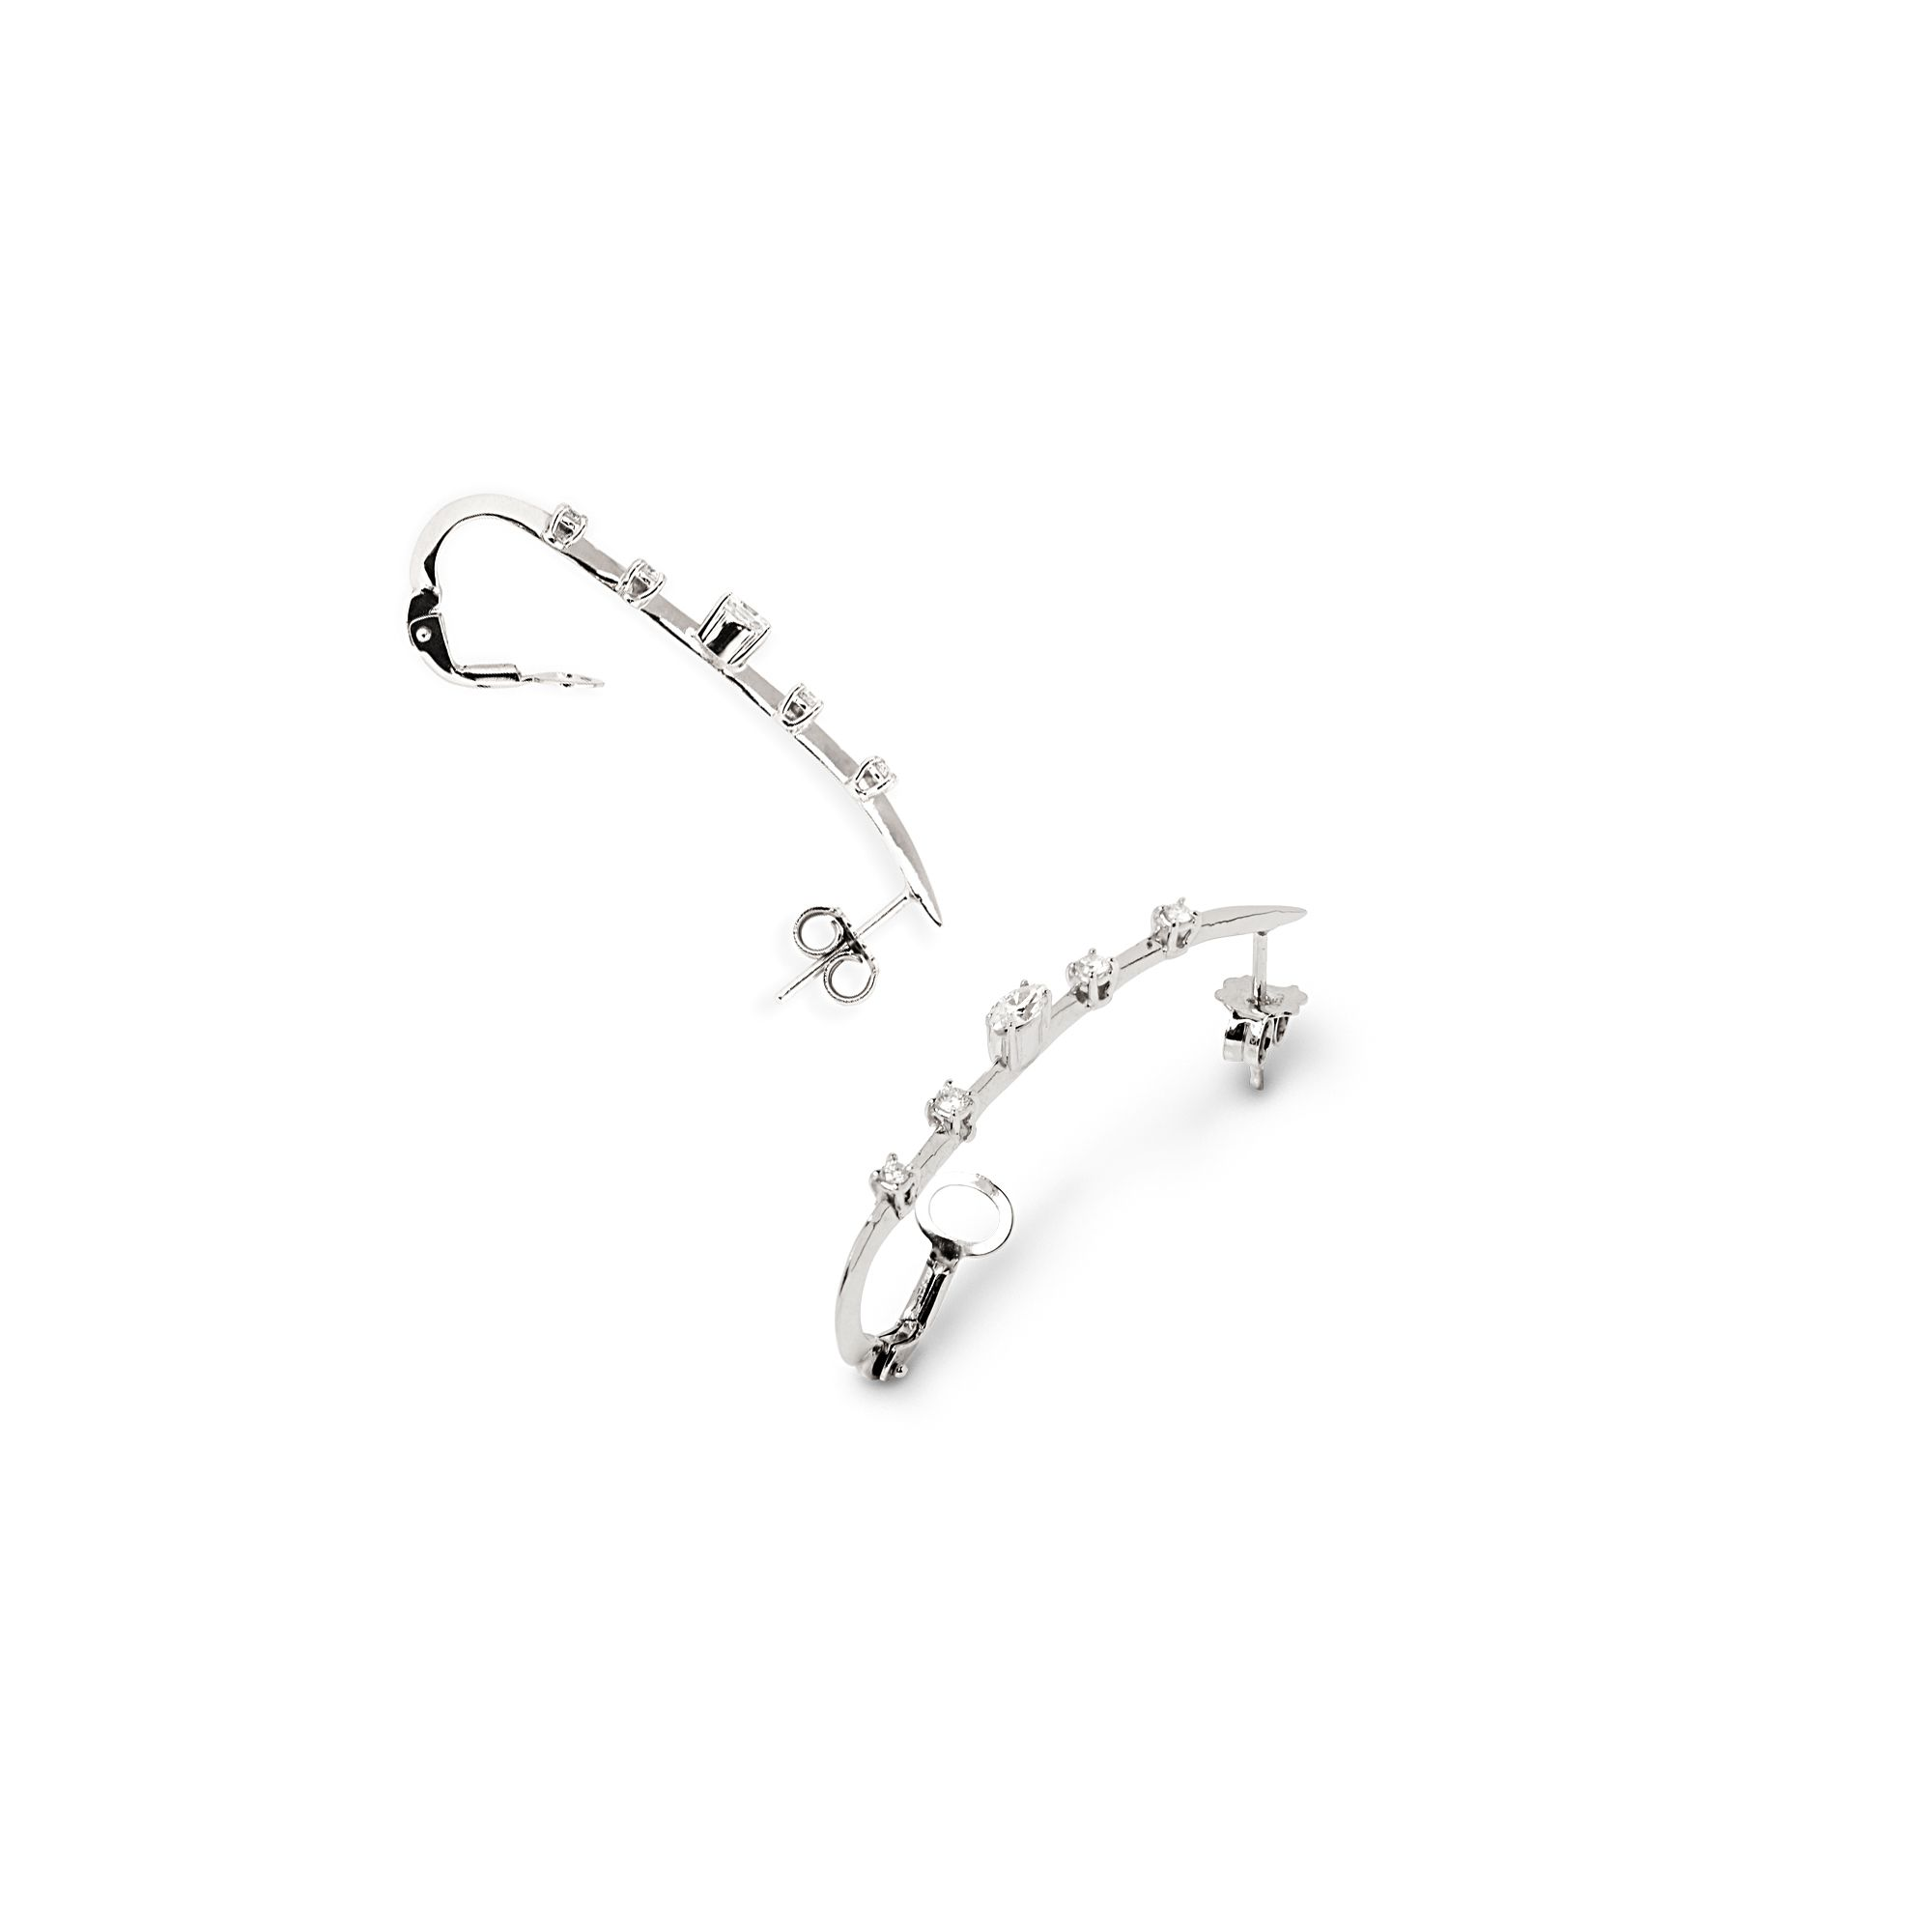 White gold 'Lance' earrings Earrings in white gold and diamonds